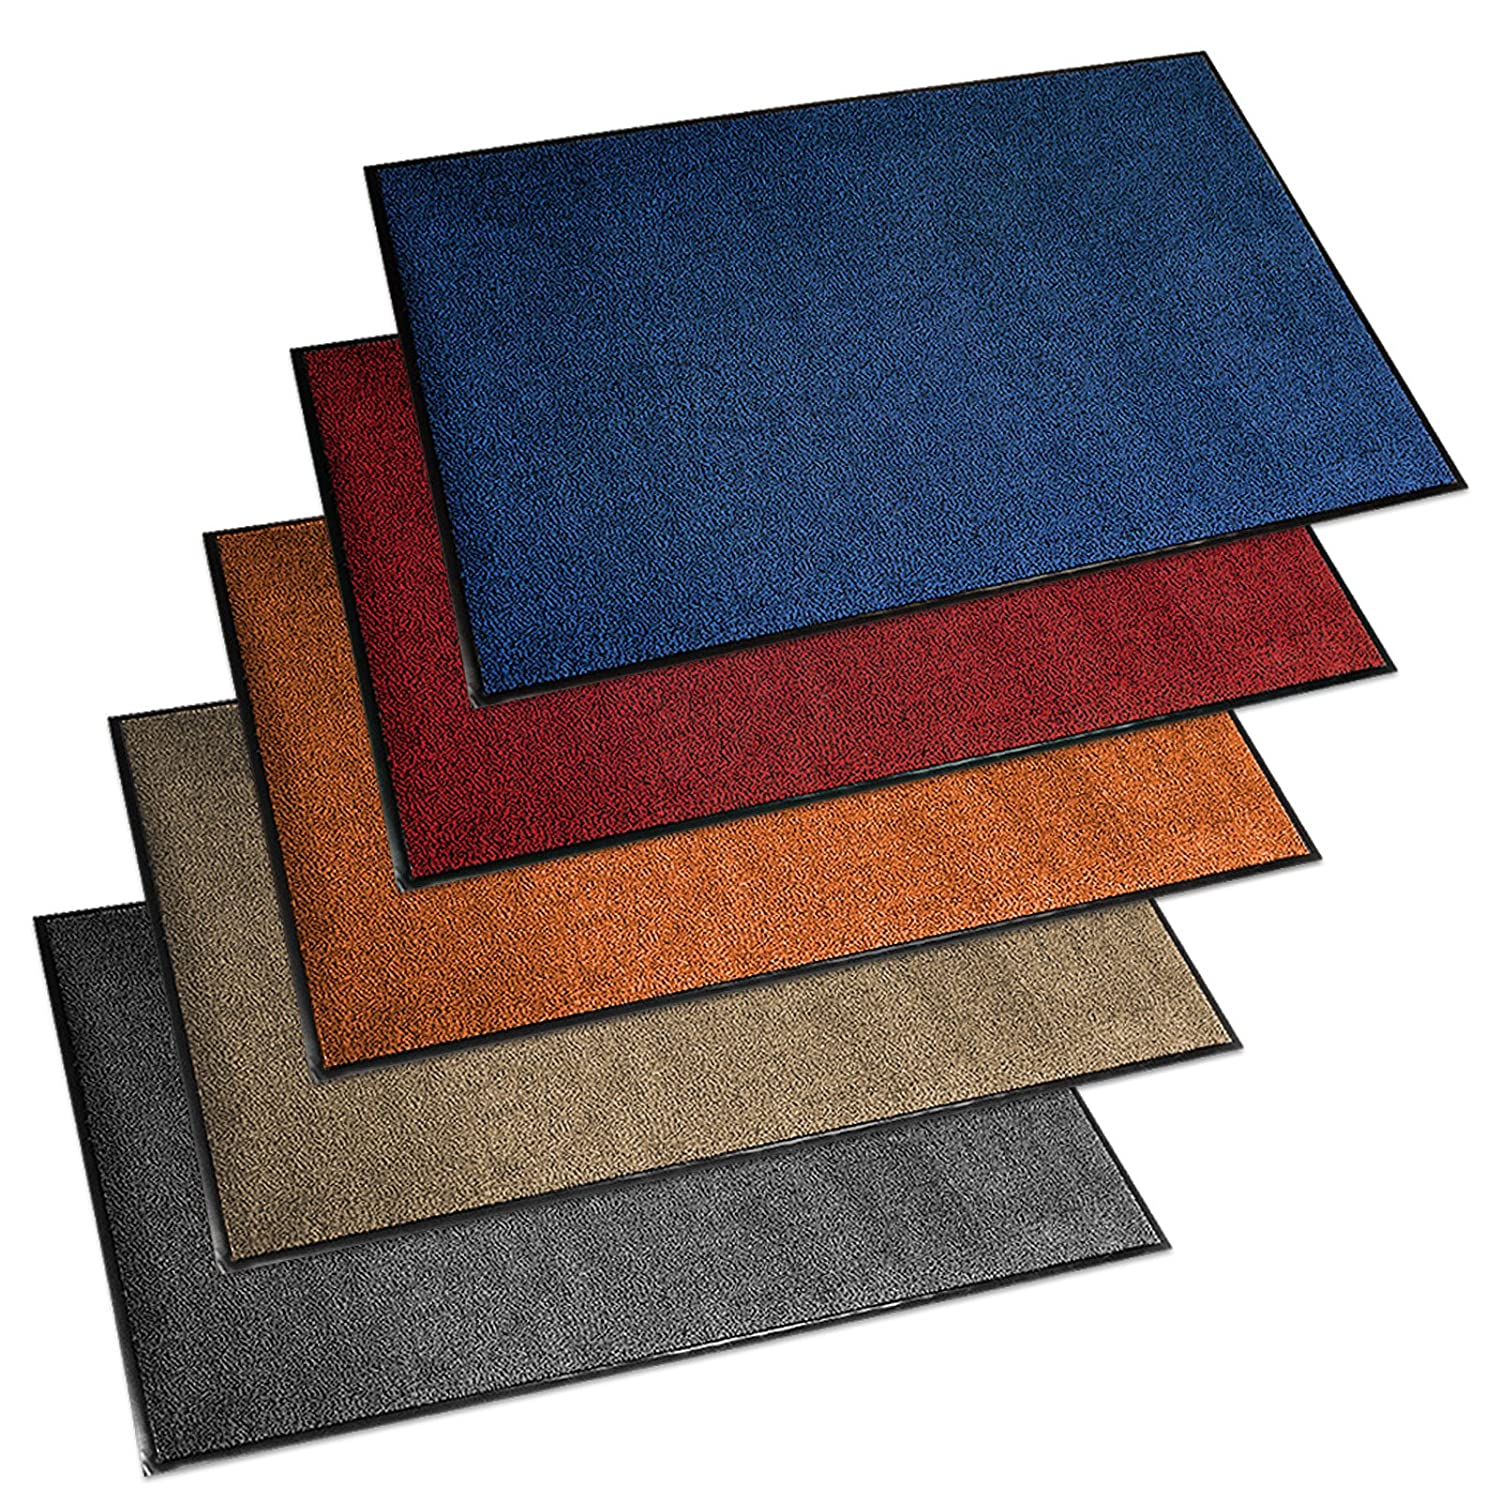 Paillassons for Tapis entree exterieur